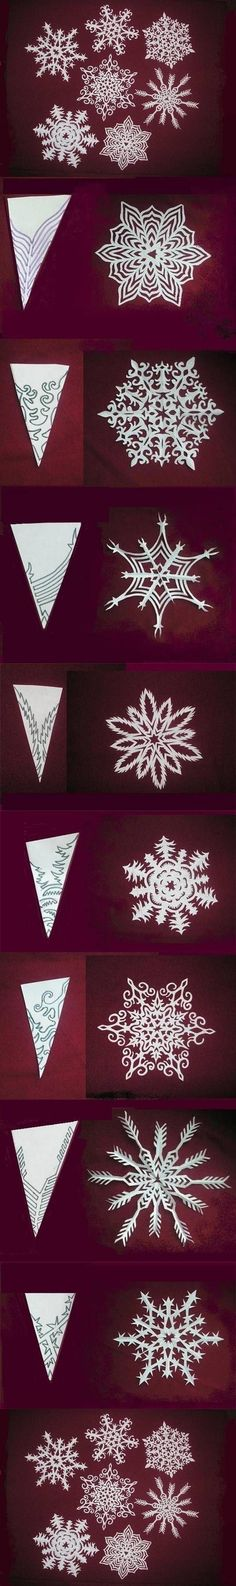 I've always liked to make snowflakes, these are nice and easy to make, the designs are simply to follow..  This site has: Christmas DIY's: 25  decorations you can make yourself